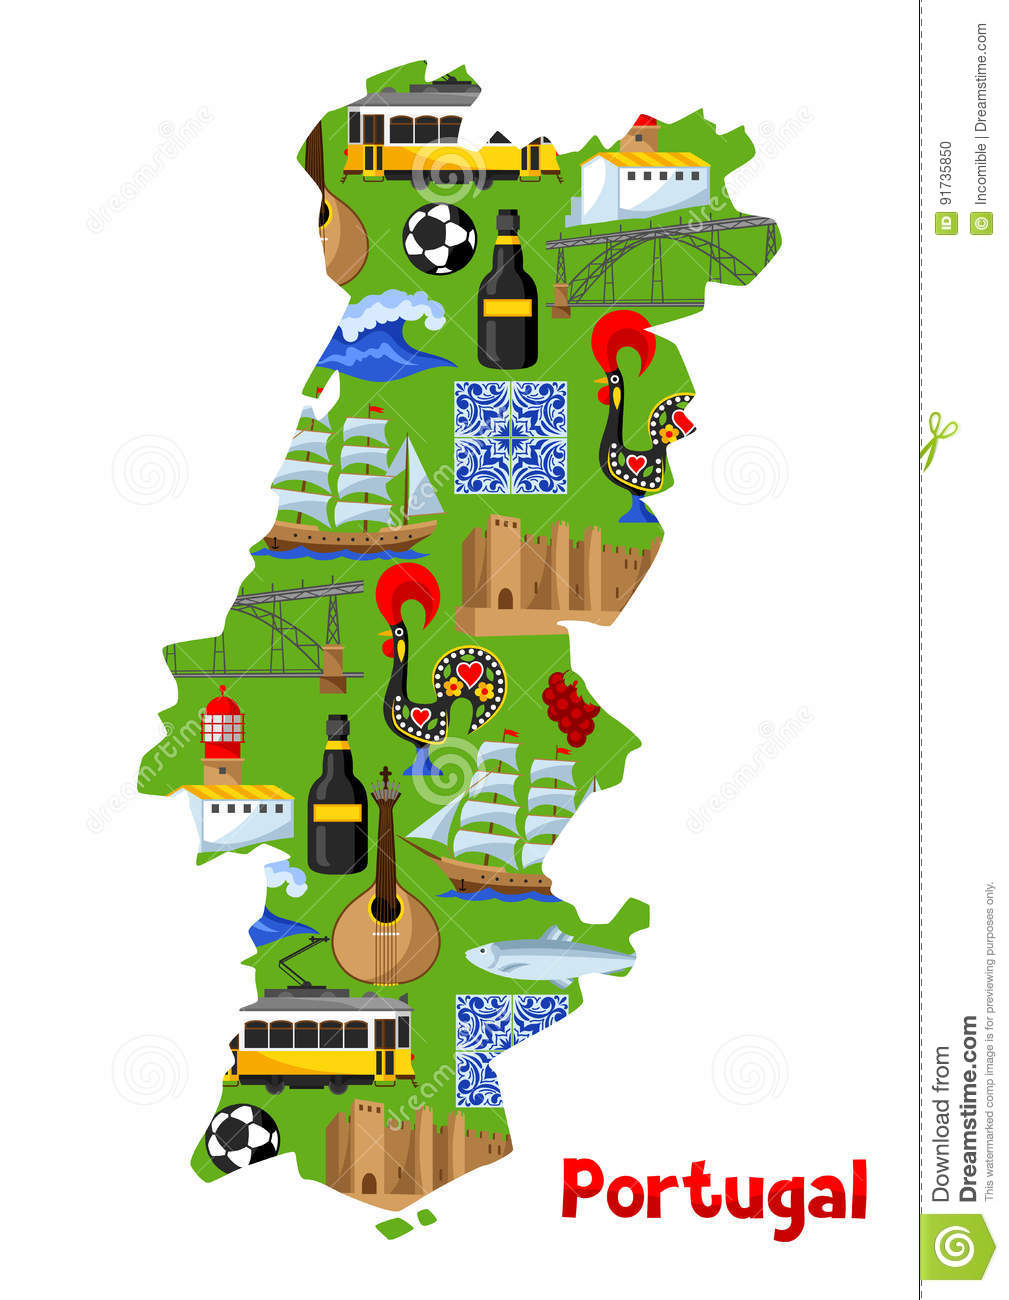 Portugal Map Portuguese National Traditional Symbols And Objects - Portugal map